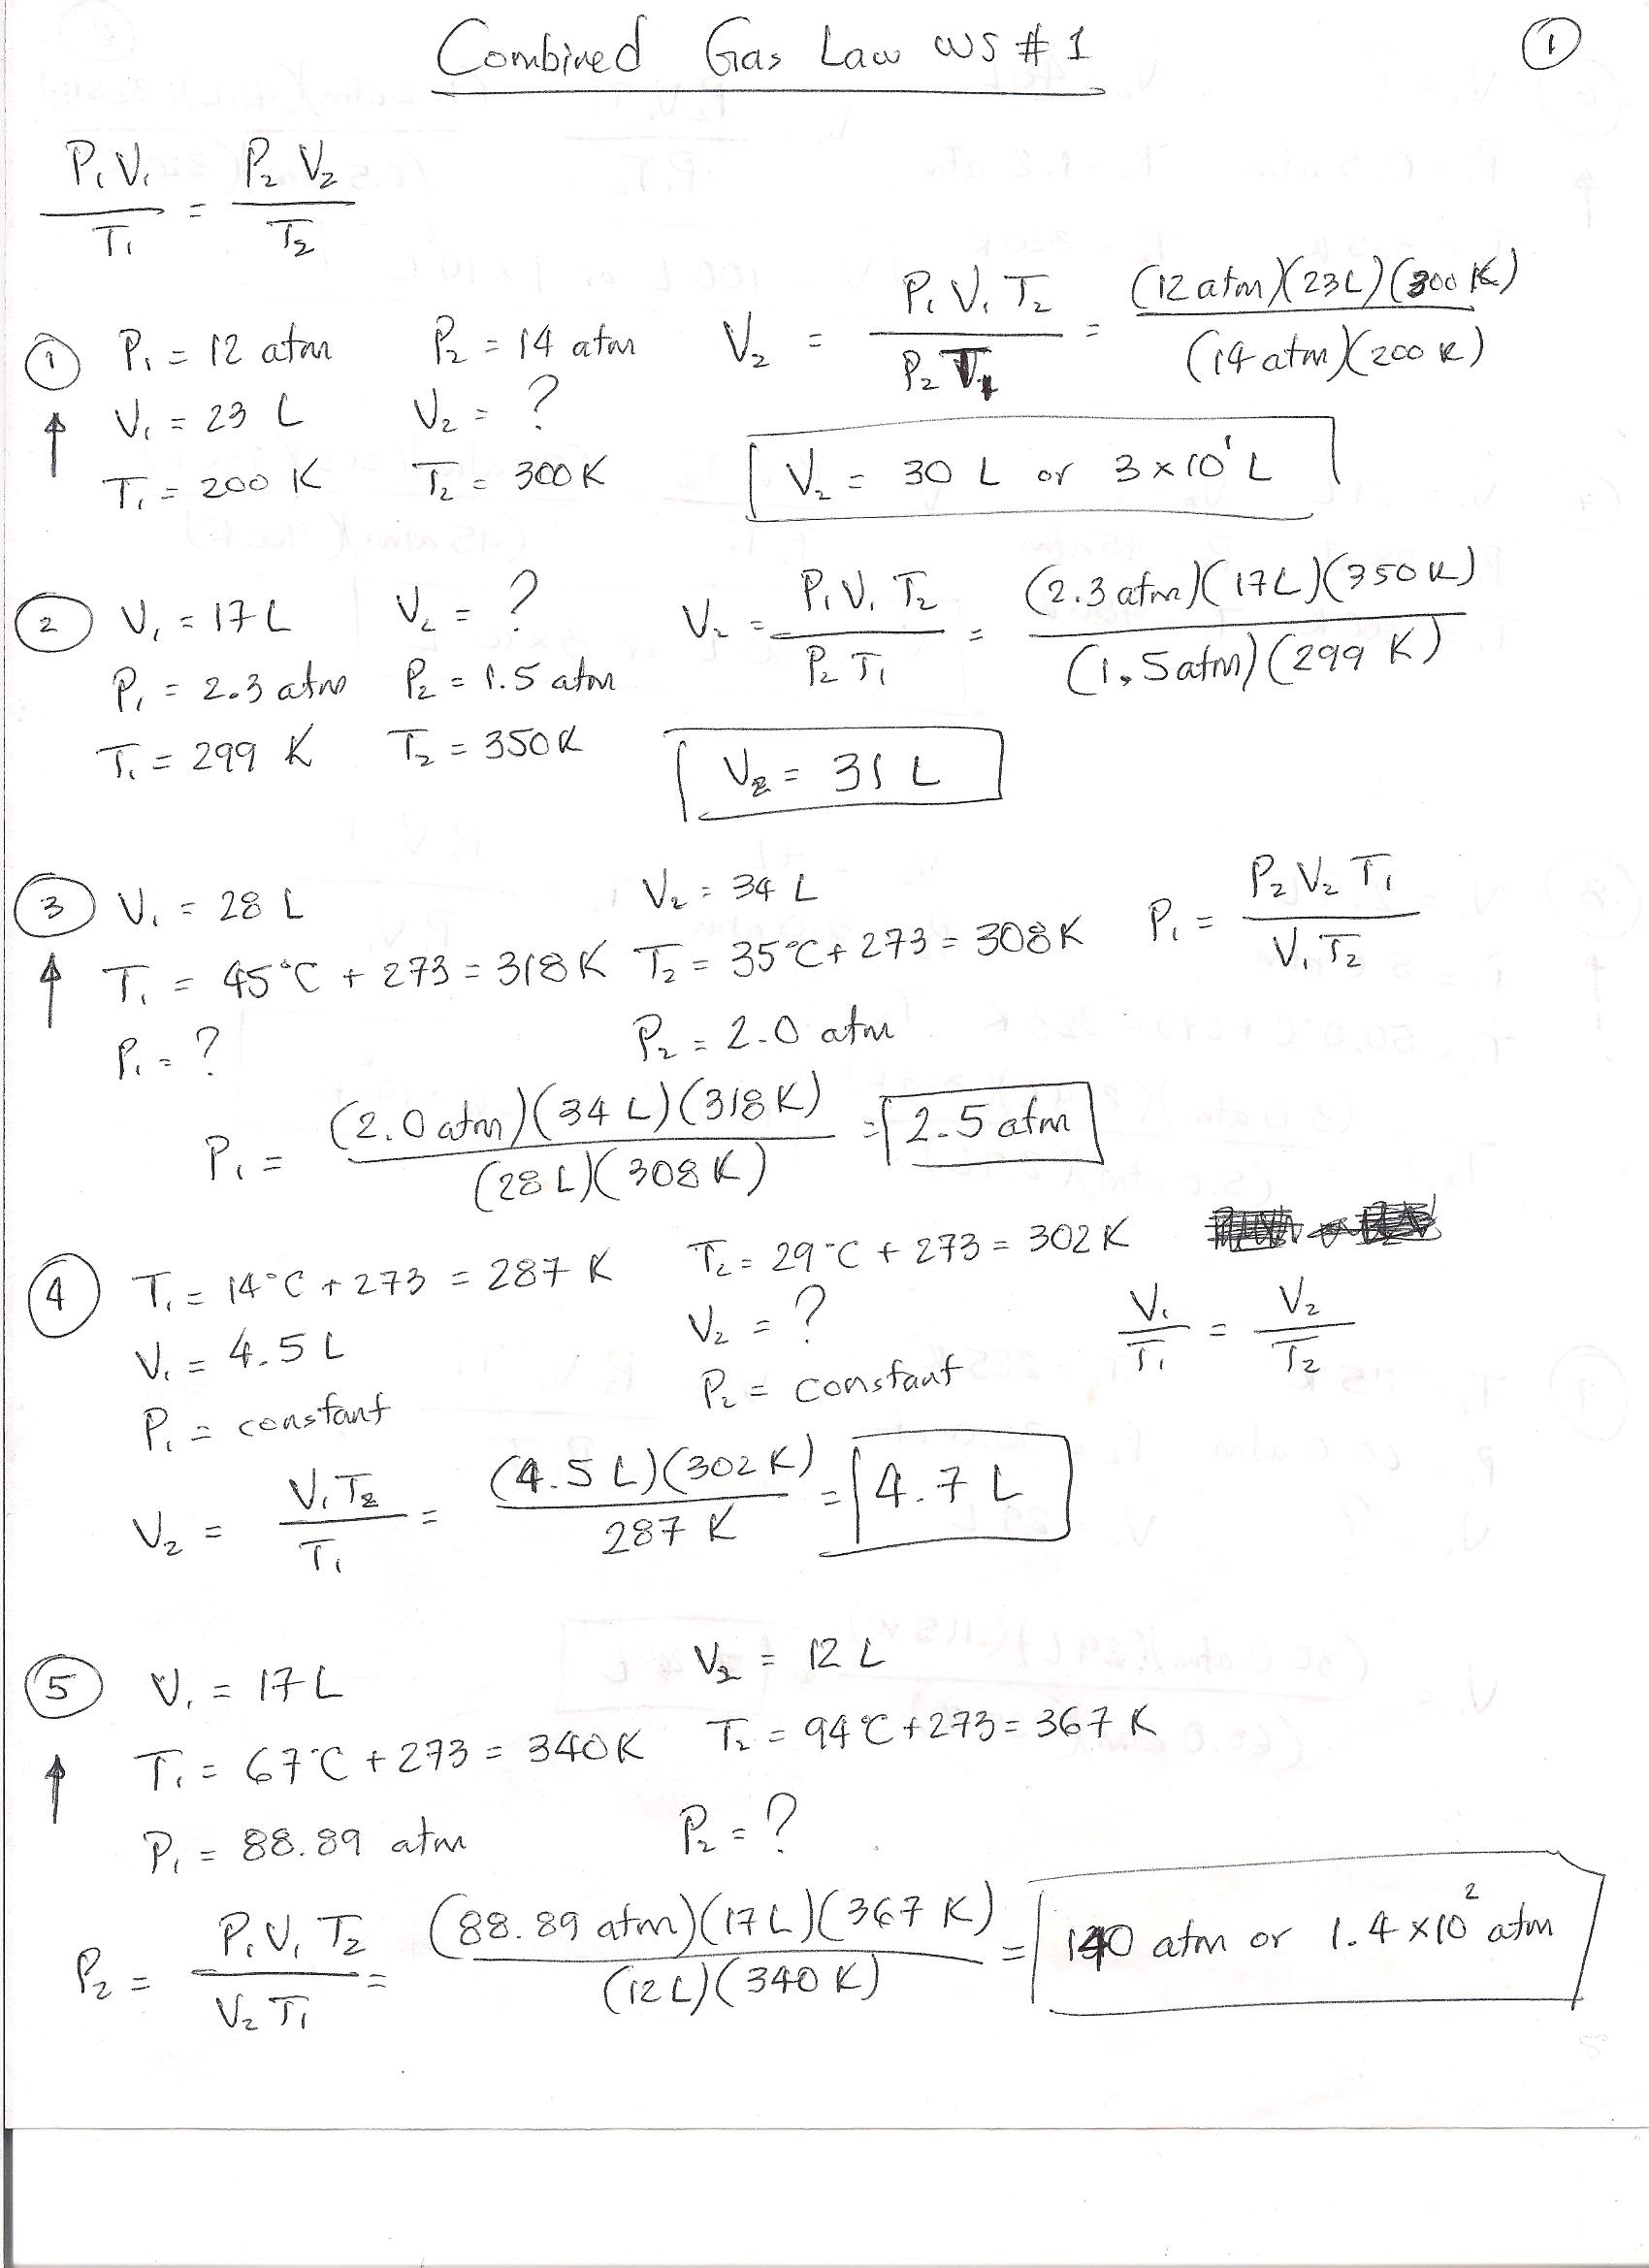 Worksheets Gas Laws Worksheet Answers stemwaregudt combined gas law worksheet answer ideal practice key download on gobookee net free books and manuals search